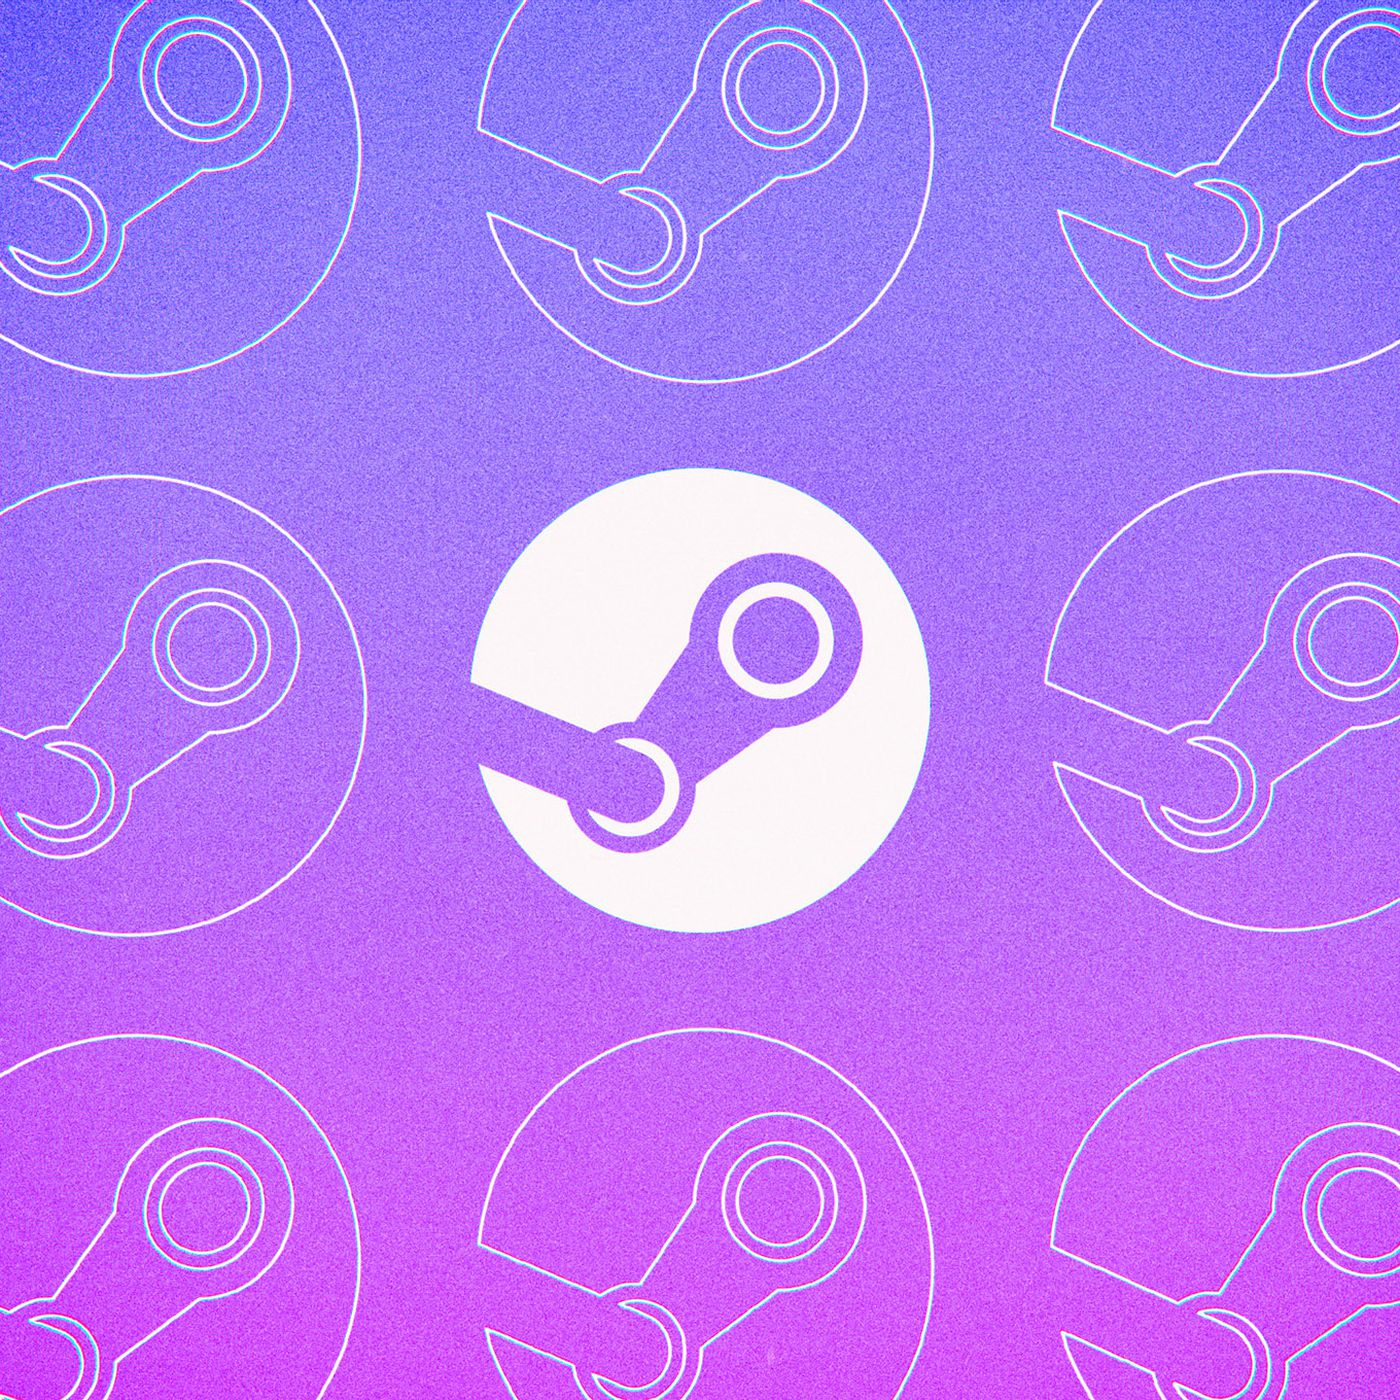 Steam is rolling out its new Discord-like chat features to